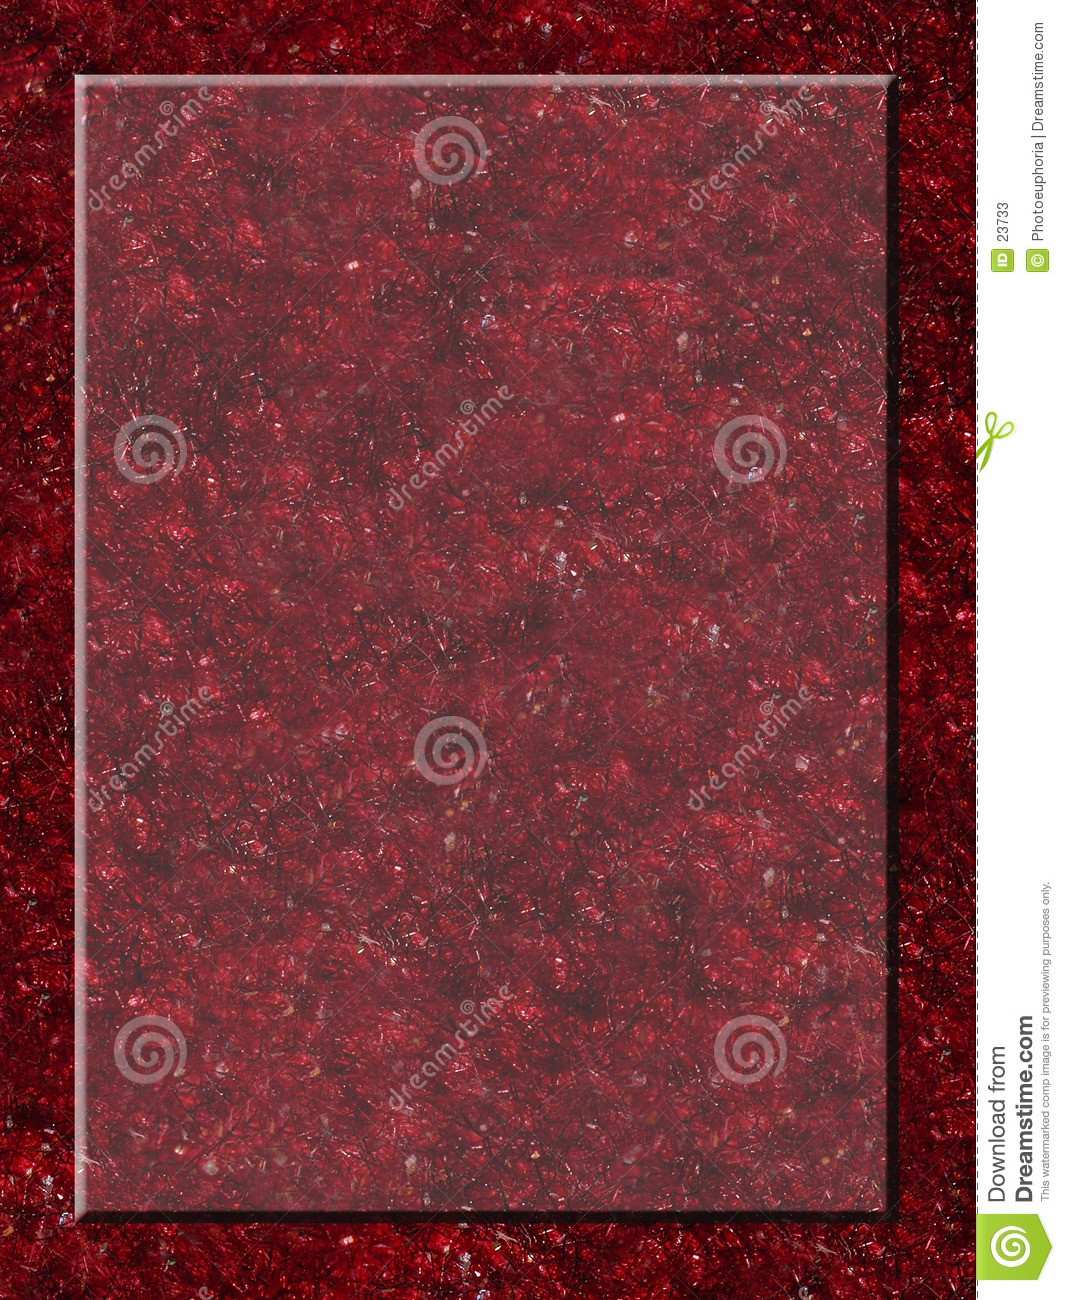 Fundo da textura do Glitter de Burgandy